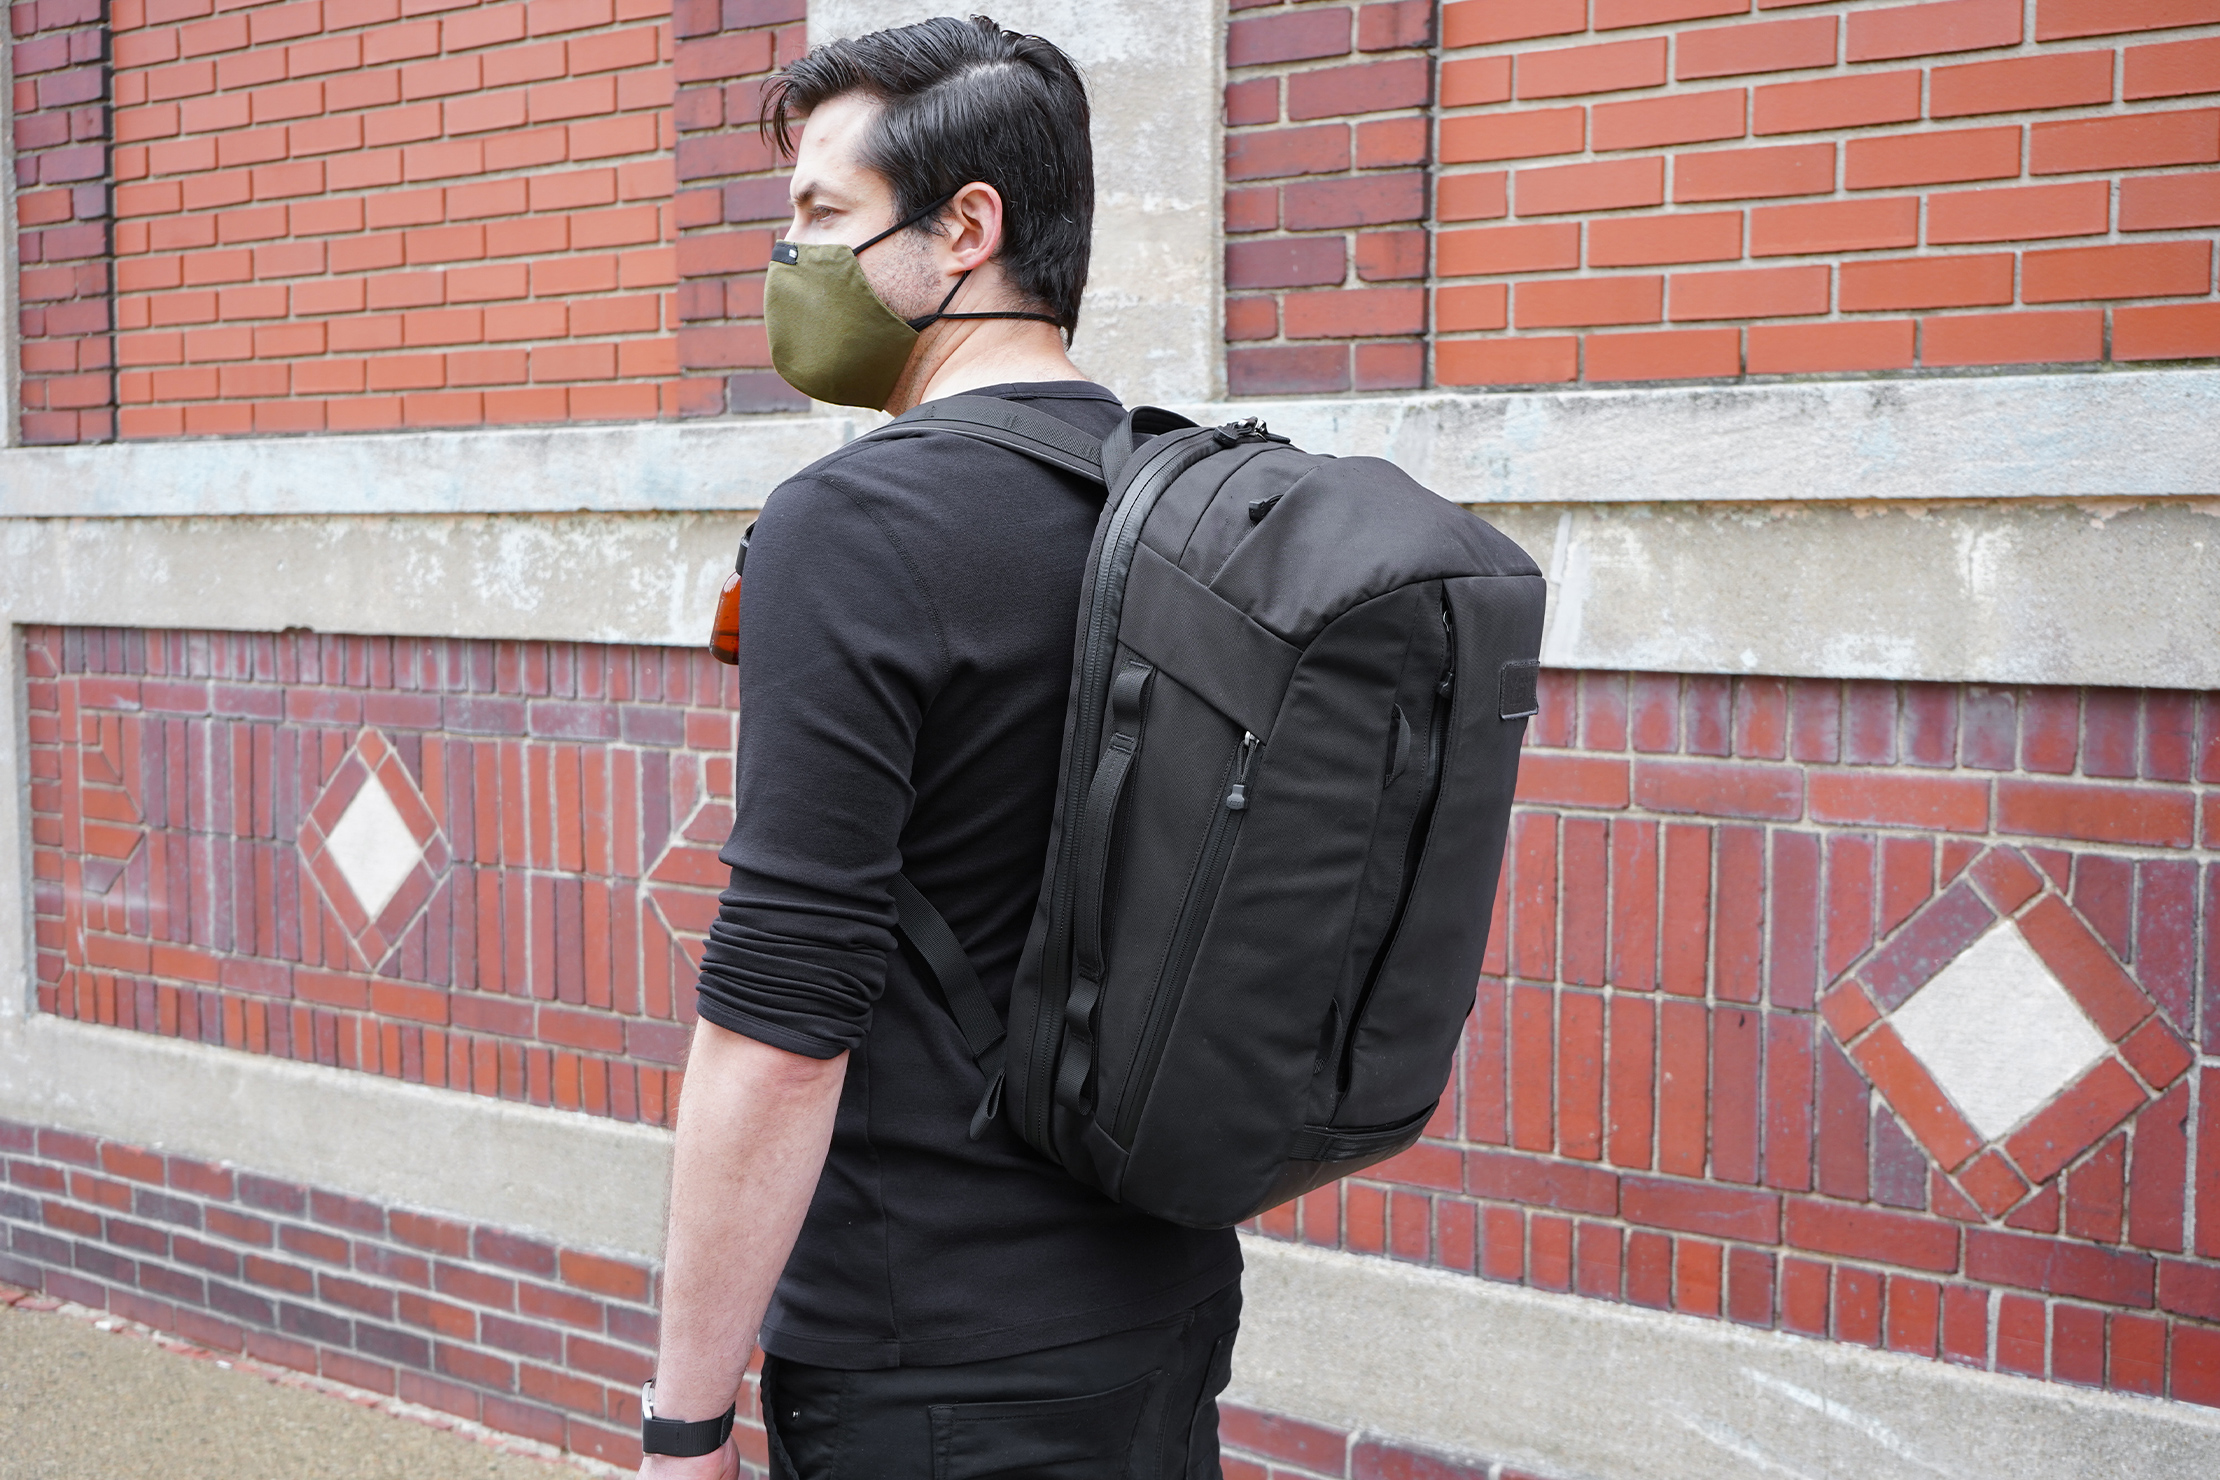 YETI Crossroads 35L Backpack | Using the backpack in another city.